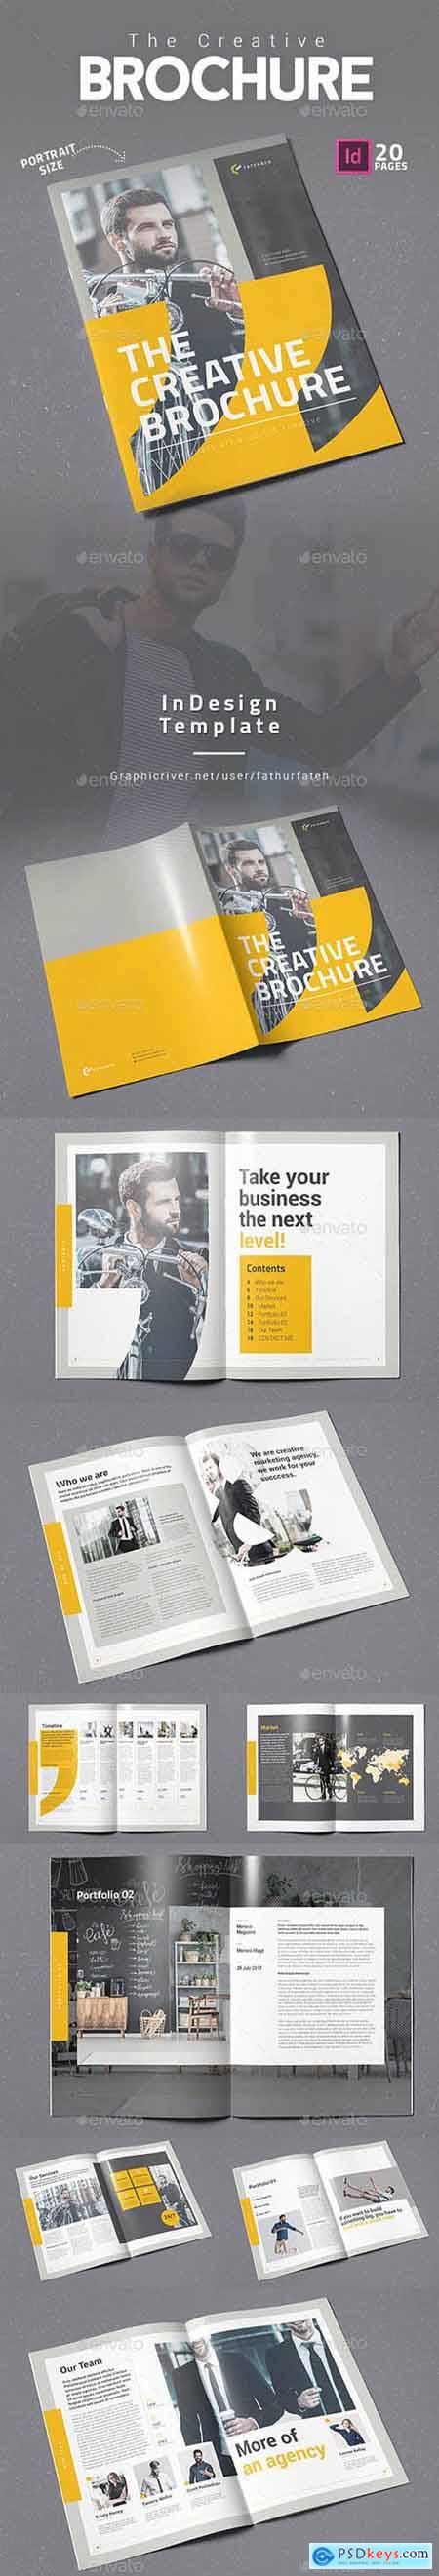 The Creative Brochure Vol.5